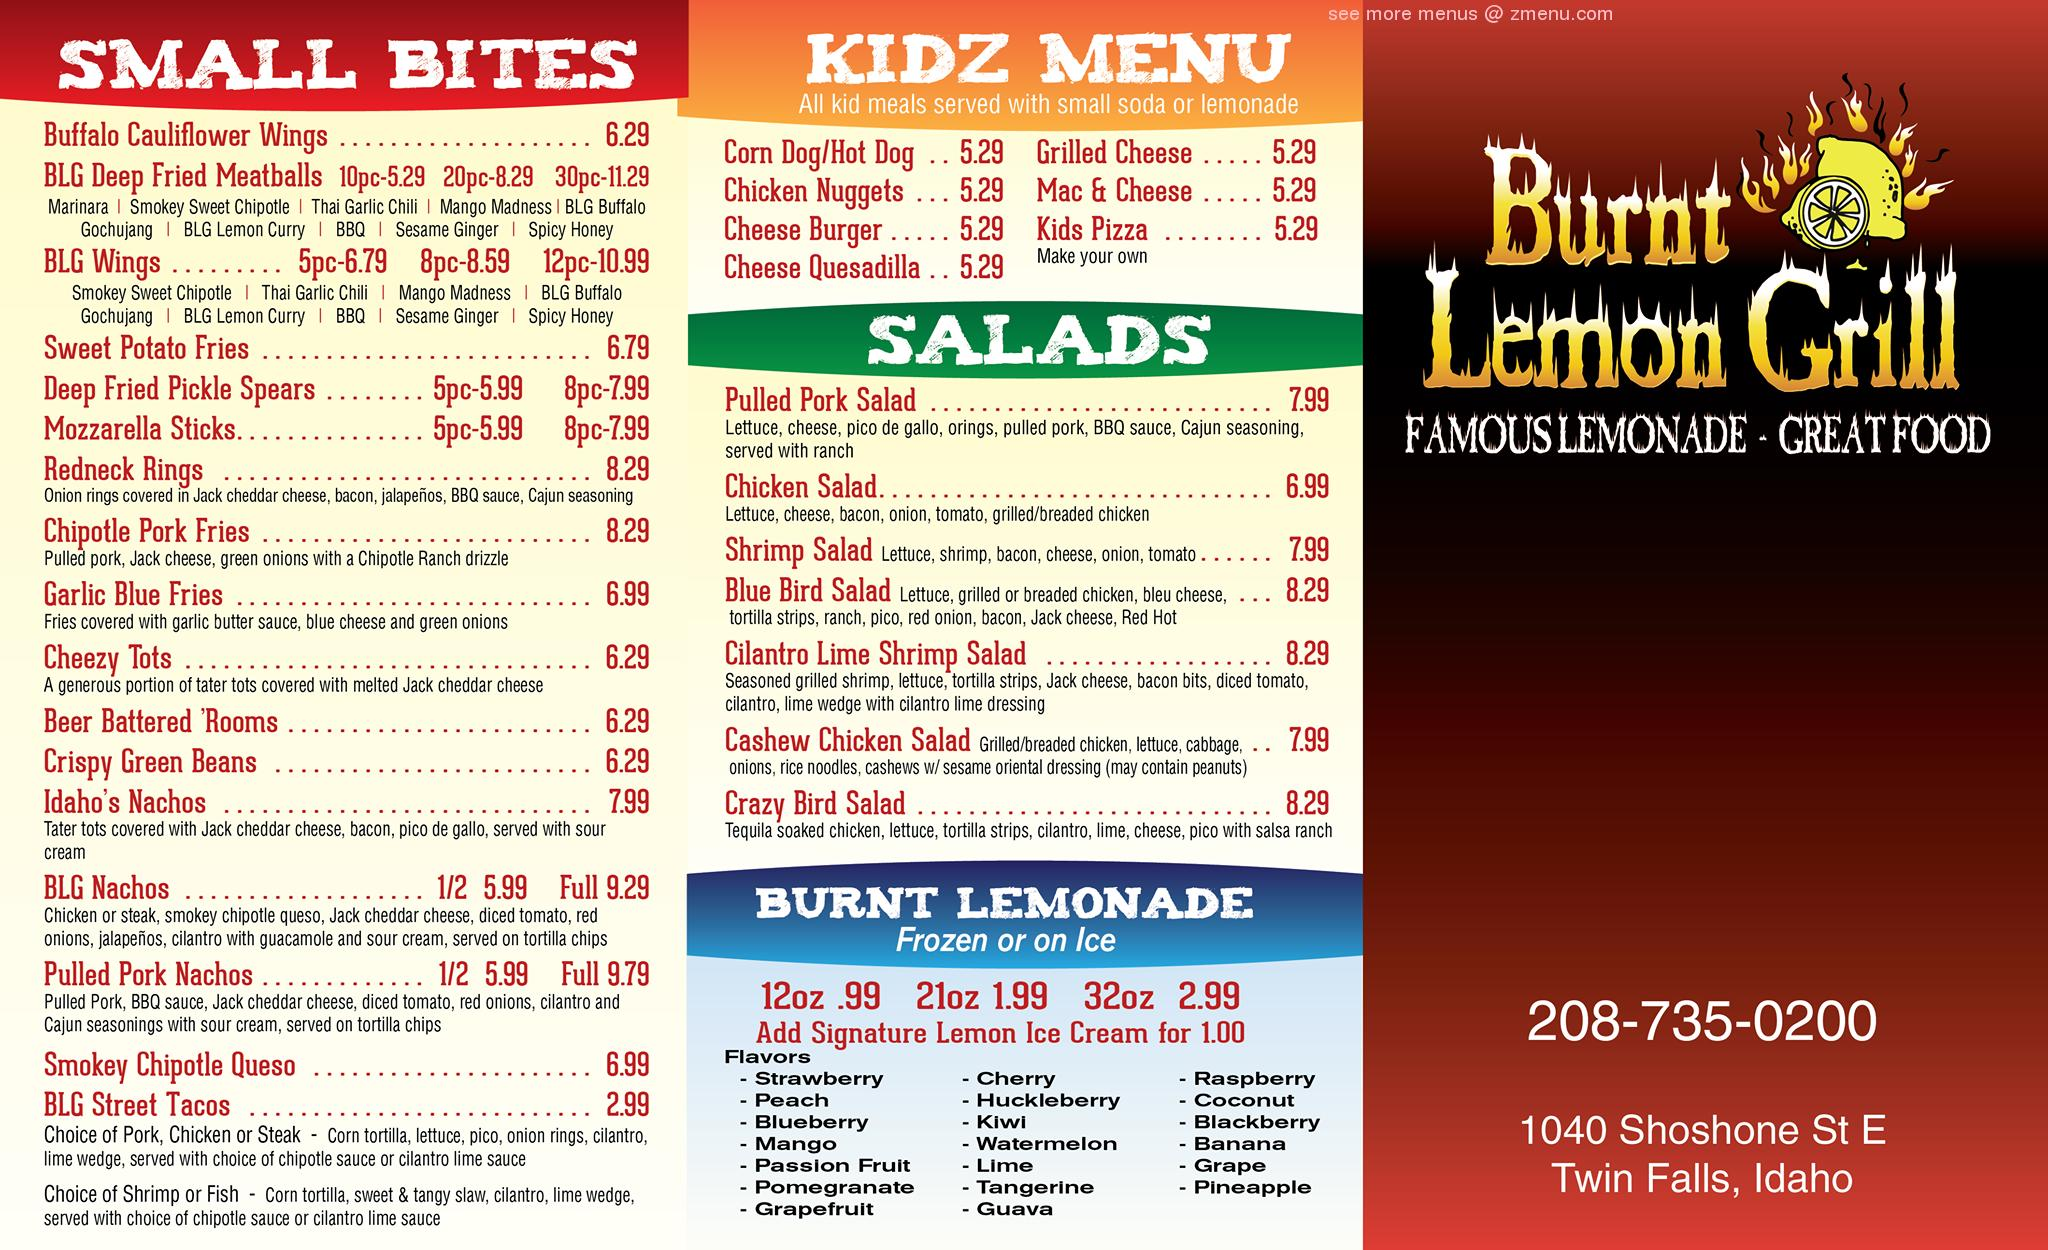 Thank you and stay healthy: Online Menu of Burnt Lemon Grill Restaurant, Twin Falls